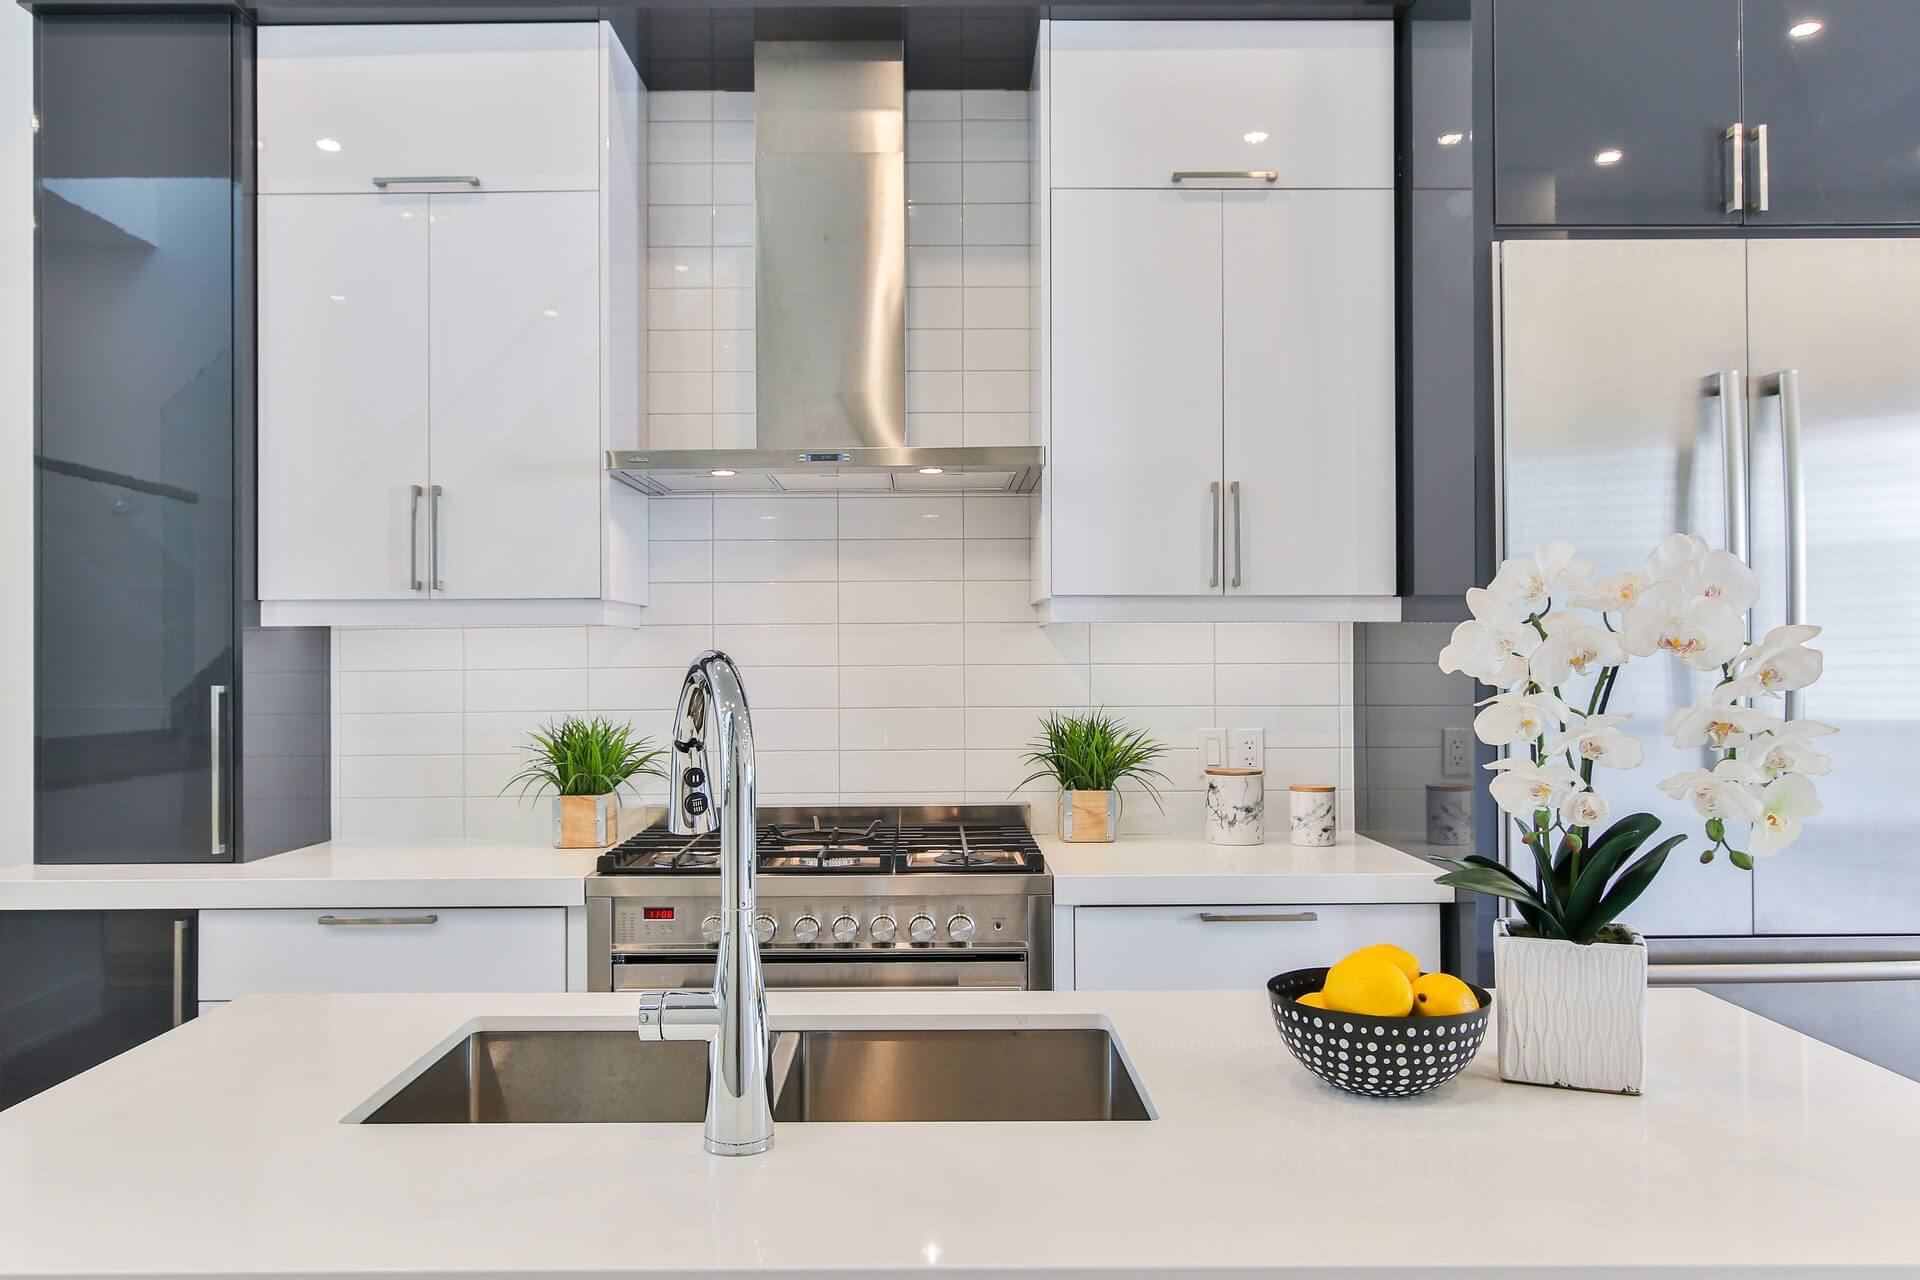 kitchen with sink and white cabinets with fridge